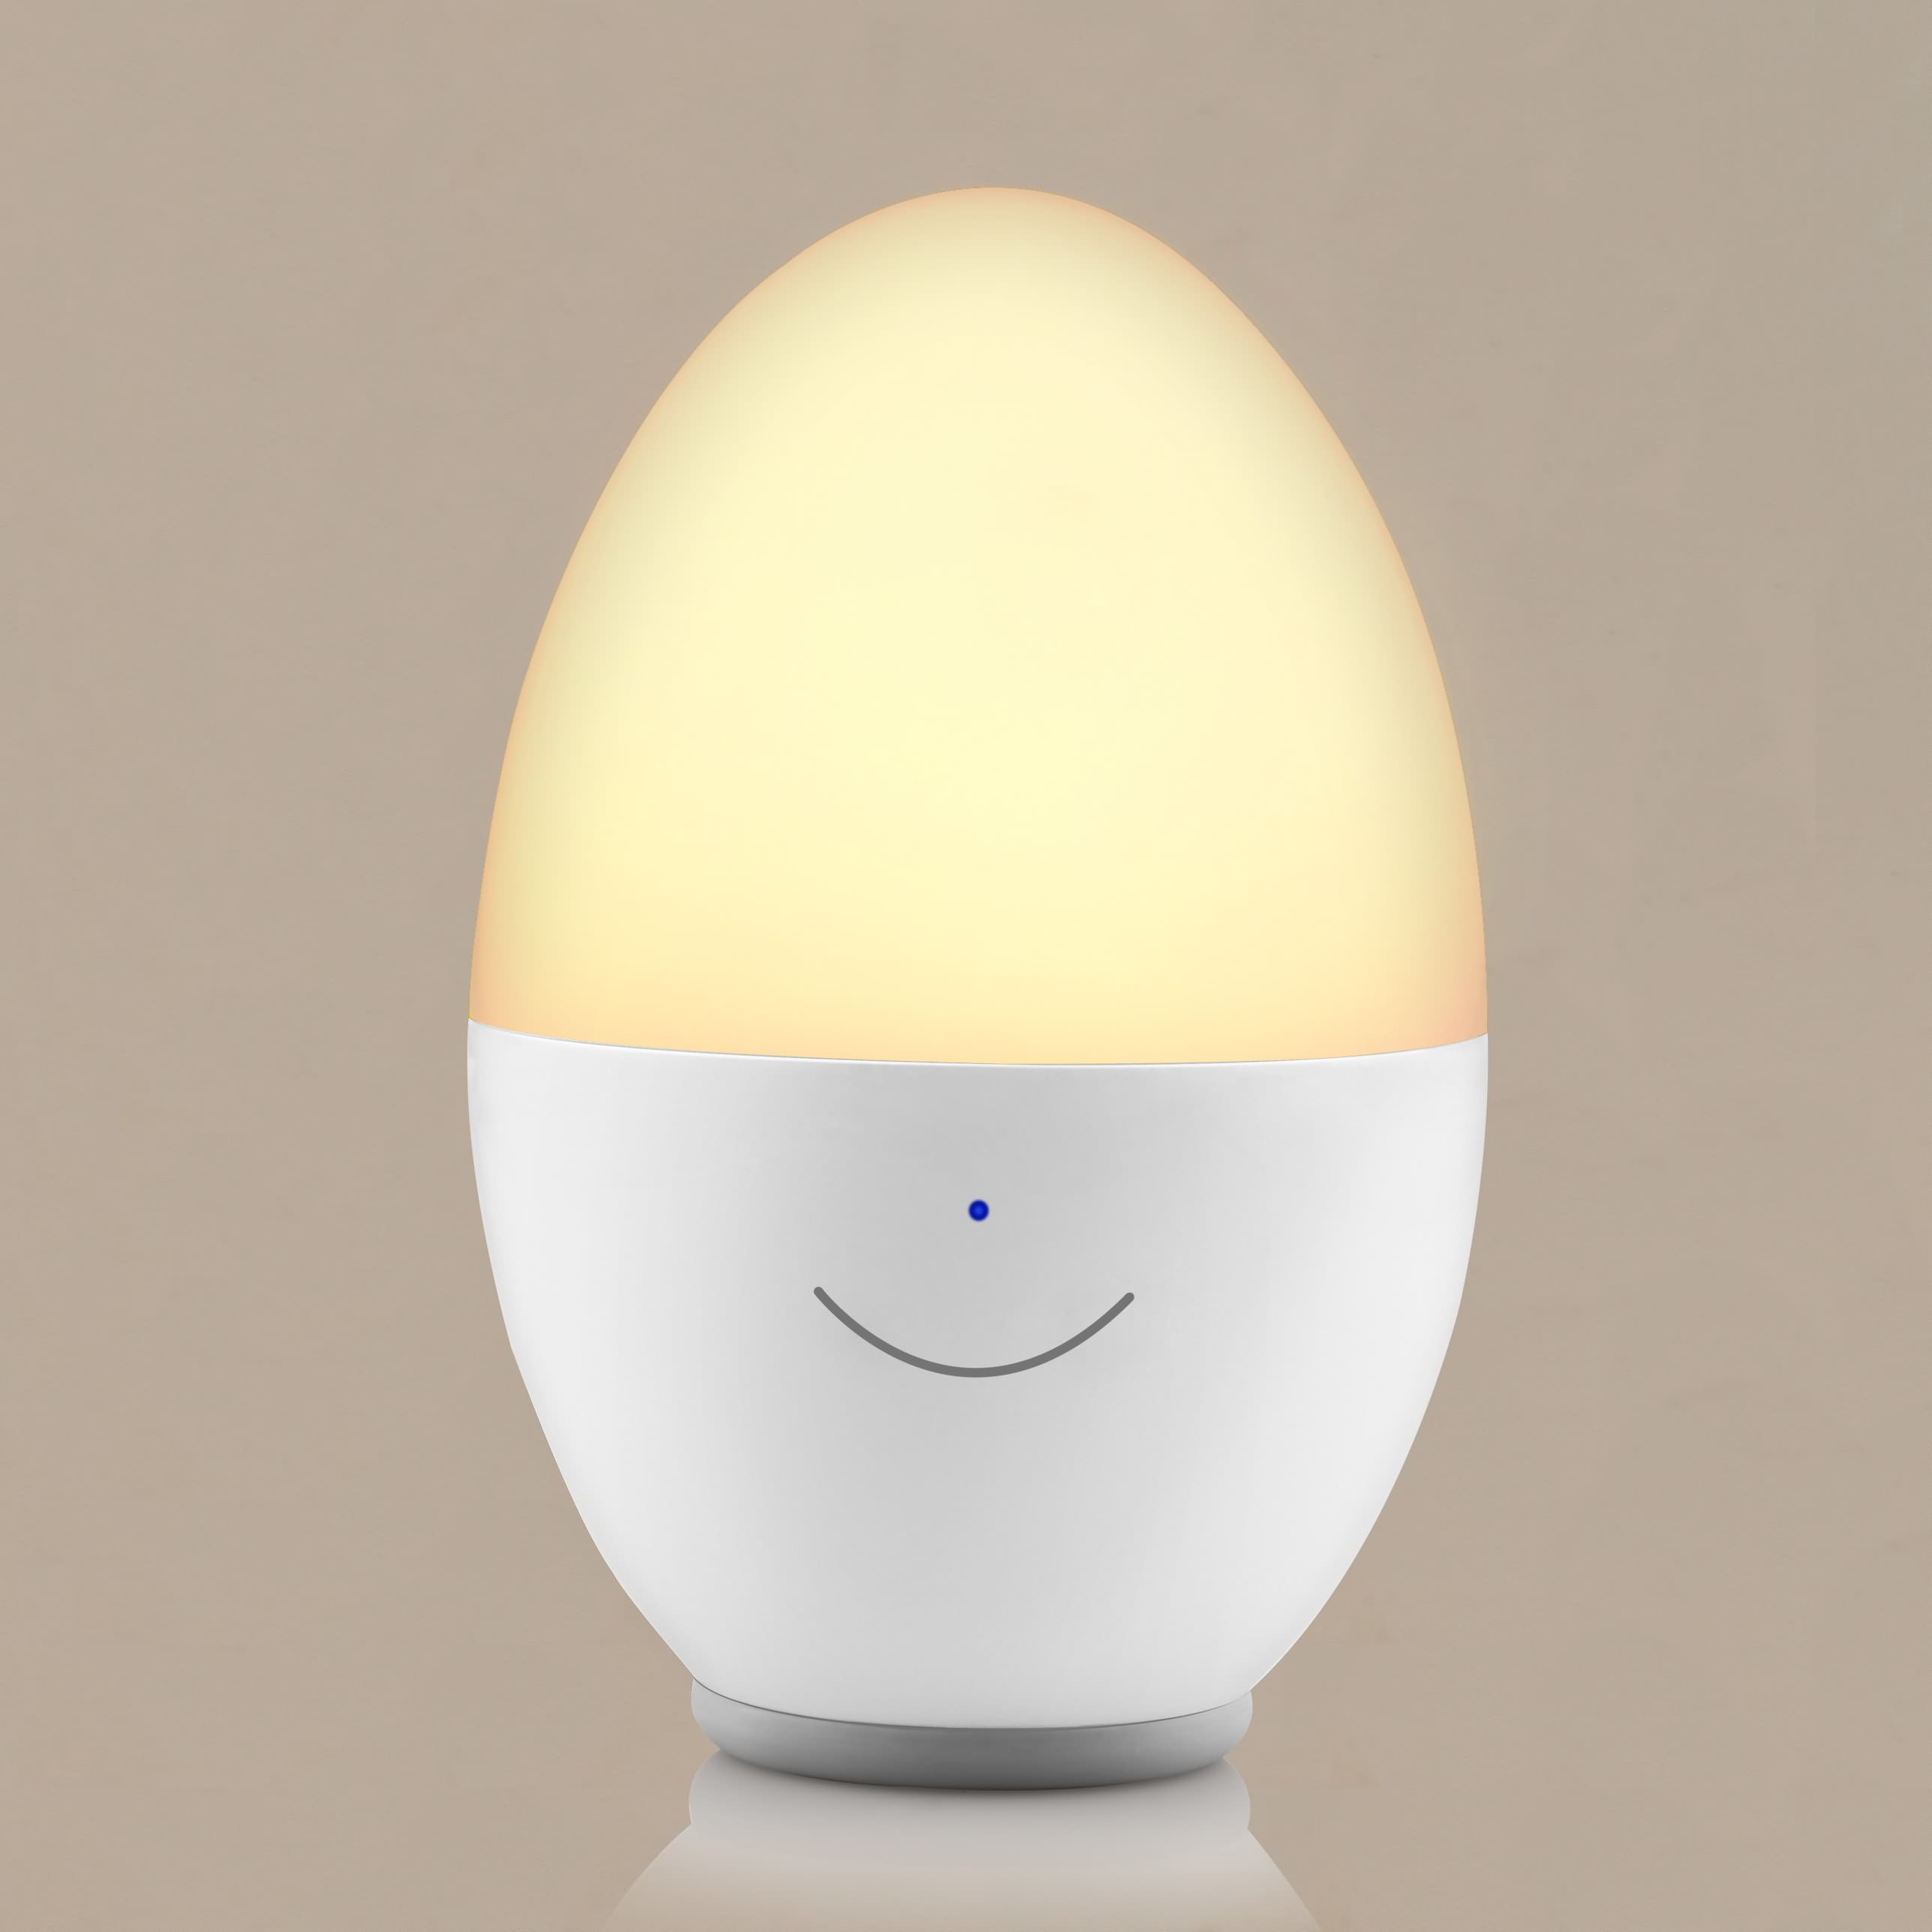 One of Hottest for Nursery Room Lamps -